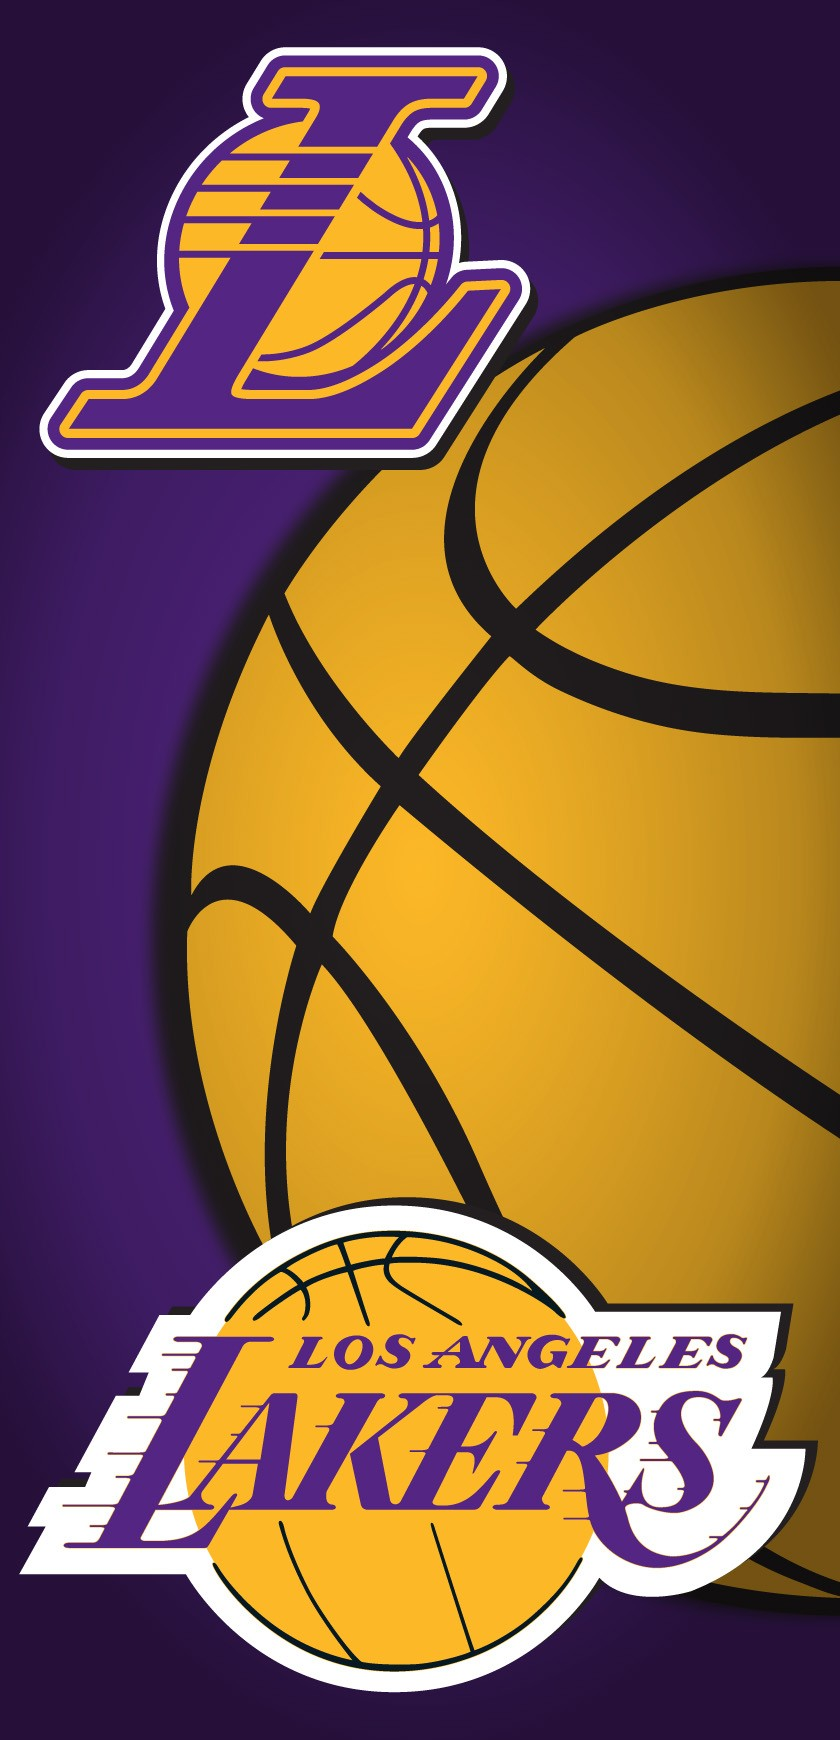 Los Angeles Lakers Ball